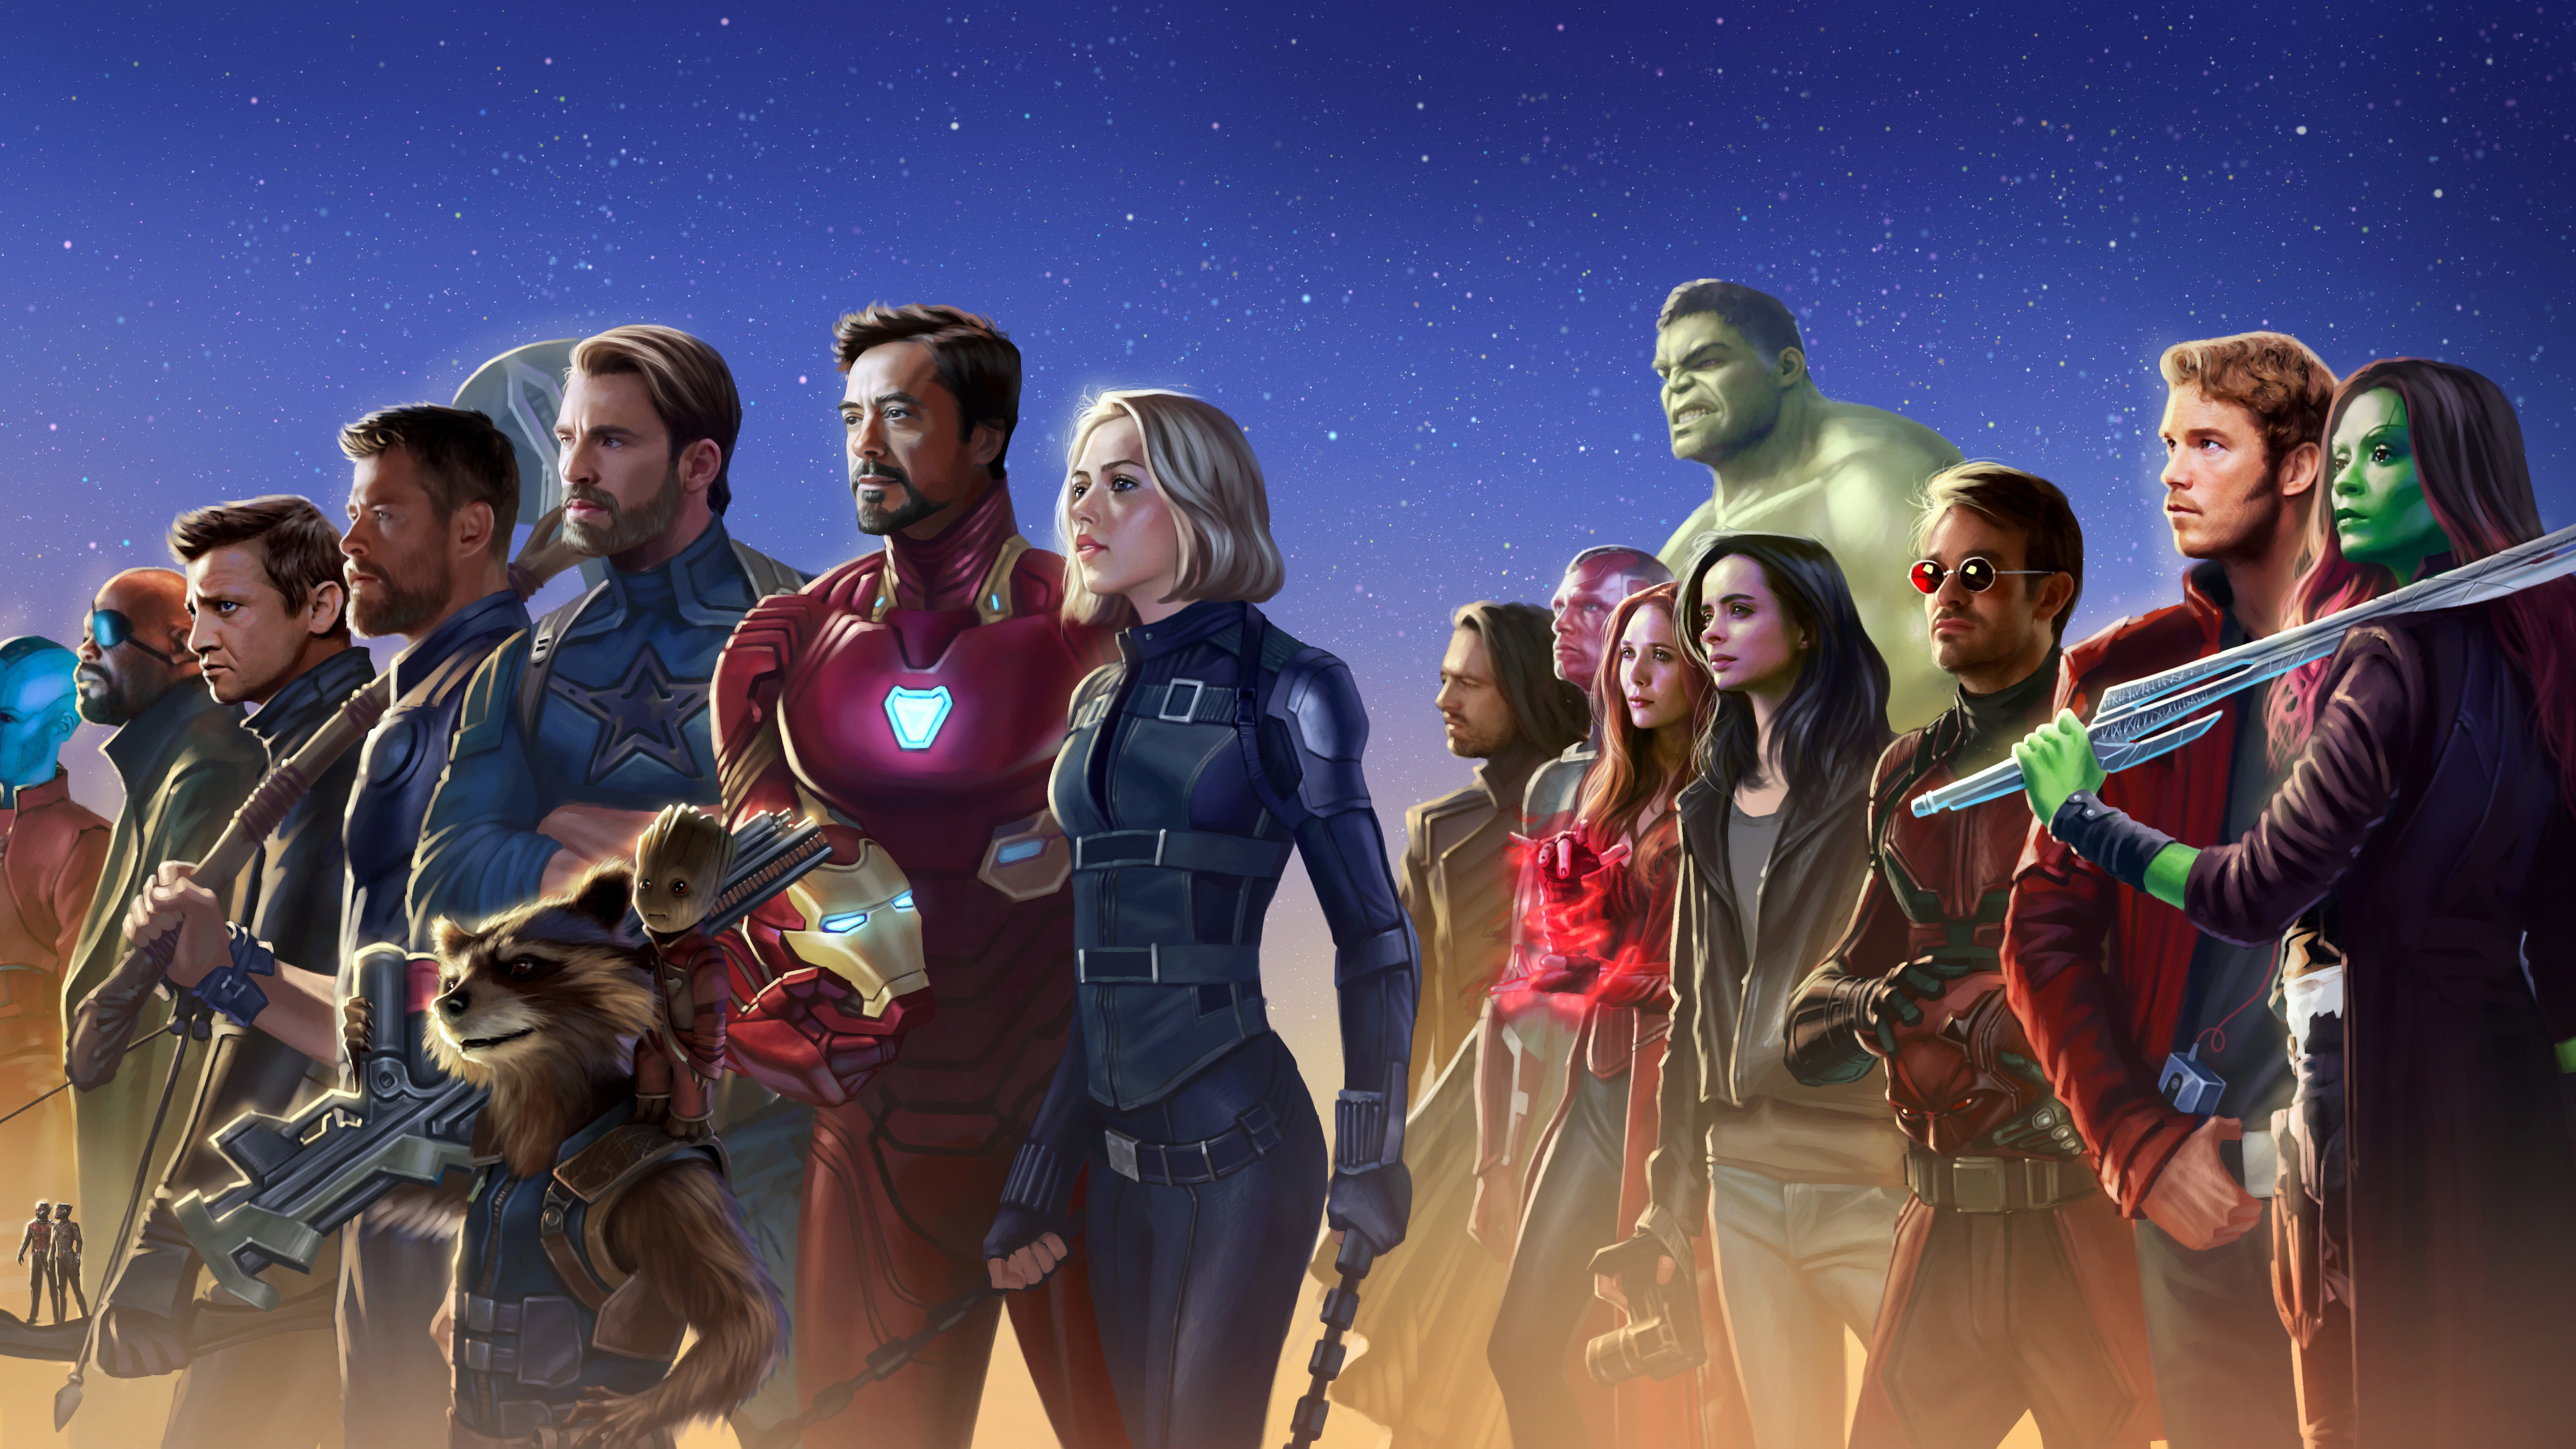 avengers infinity war 4k 5k 1537645698 - Avengers Infinity War 4k 5k - movies wallpapers, hd-wallpapers, deviantart wallpapers, avengers-infinity-war-wallpapers, artwork wallpapers, artist wallpapers, 5k wallpapers, 4k-wallpapers, 2018-movies-wallpapers